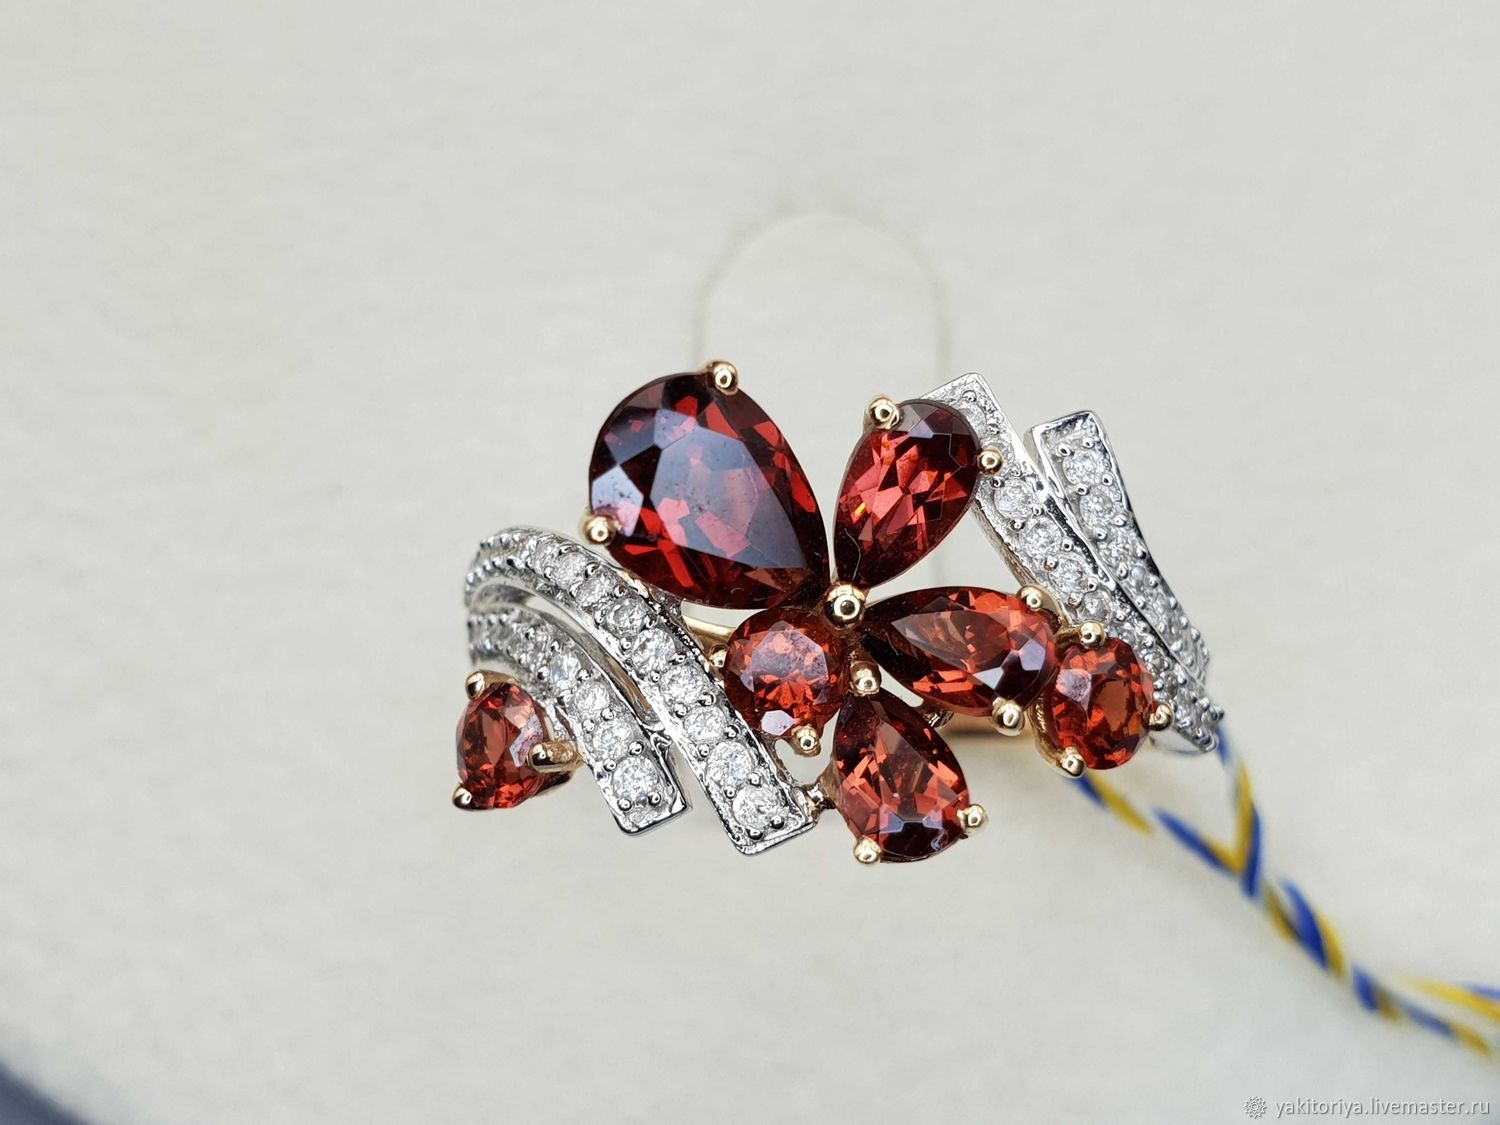 Gold ring with 2,202 Ct garnets and 0,243 Ct diamonds, Rings, Moscow,  Фото №1